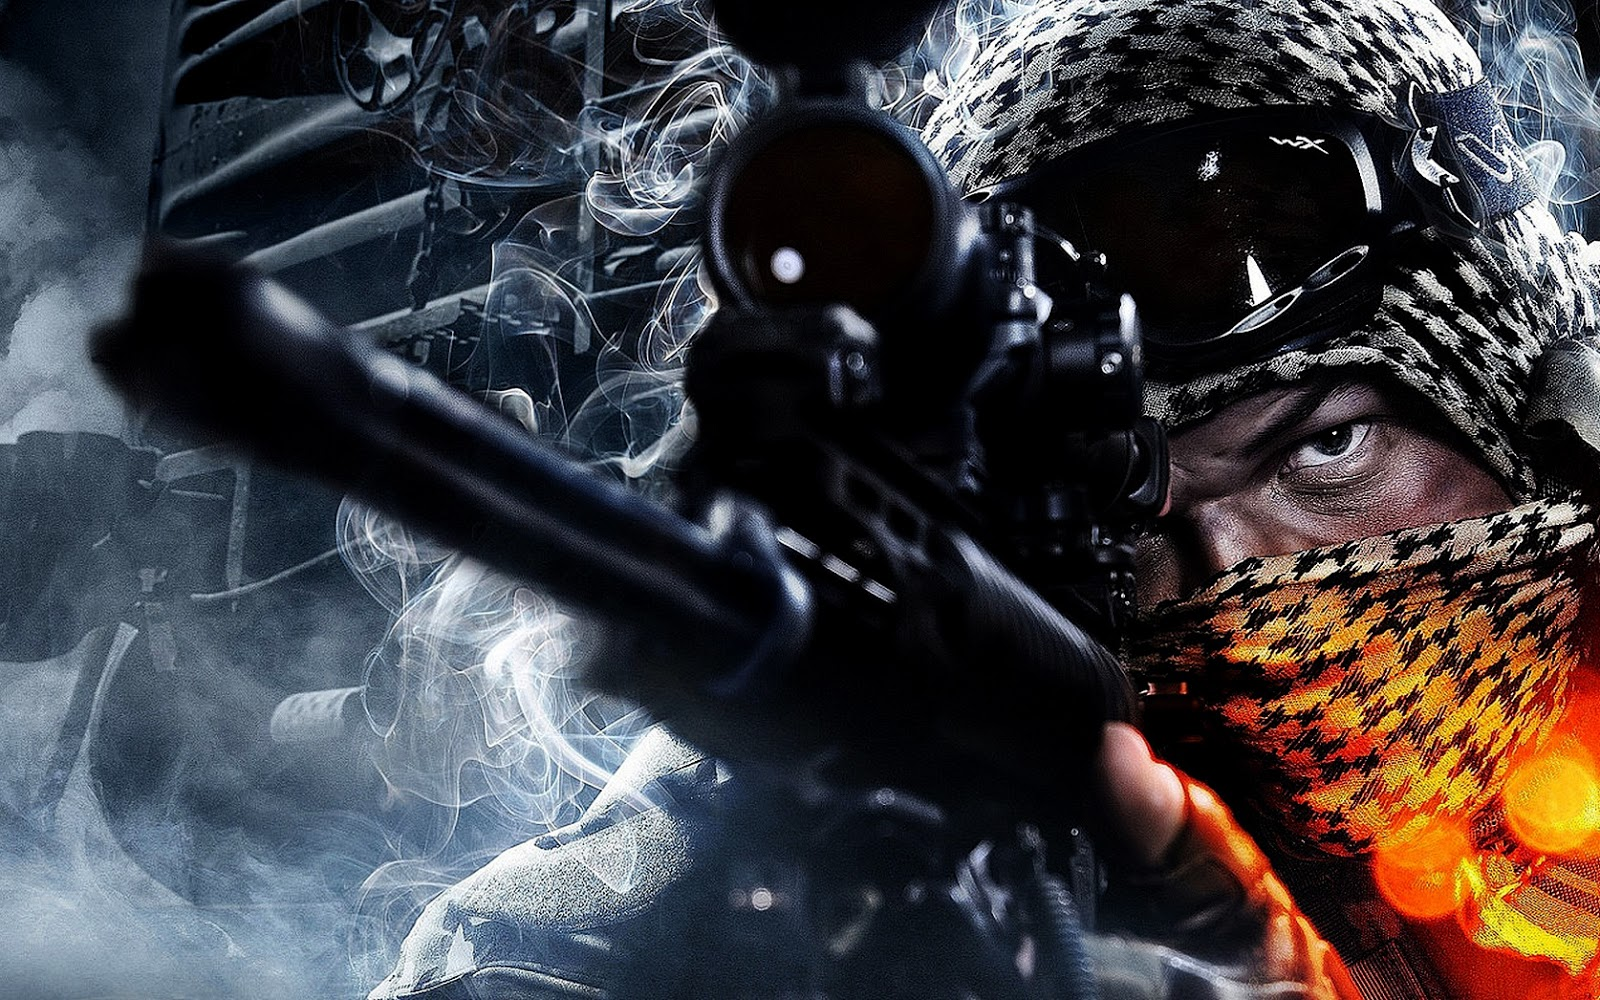 15 Best Sniper Wallpapers from Video Games Download Wallpapers in 1600x1000